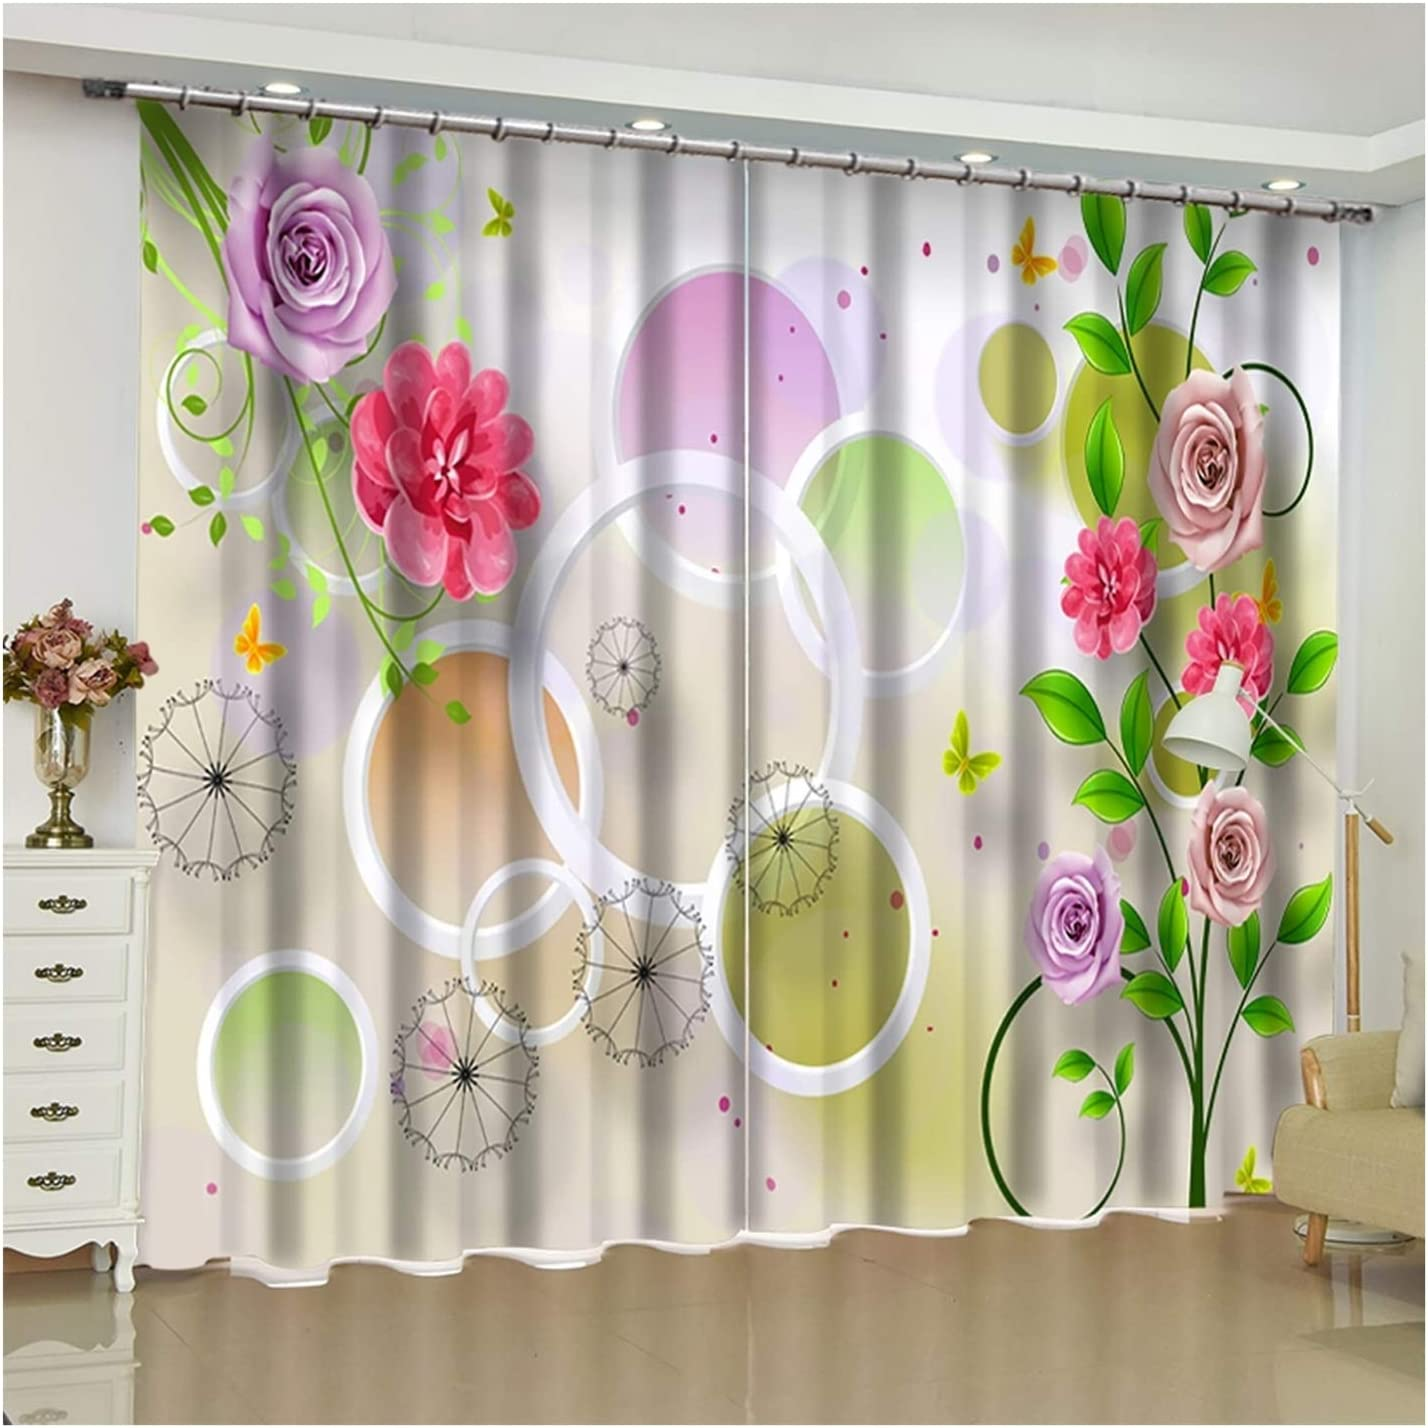 Daesar Blackout Curtains Living Opening large Max 45% OFF release sale Room 2 Panel